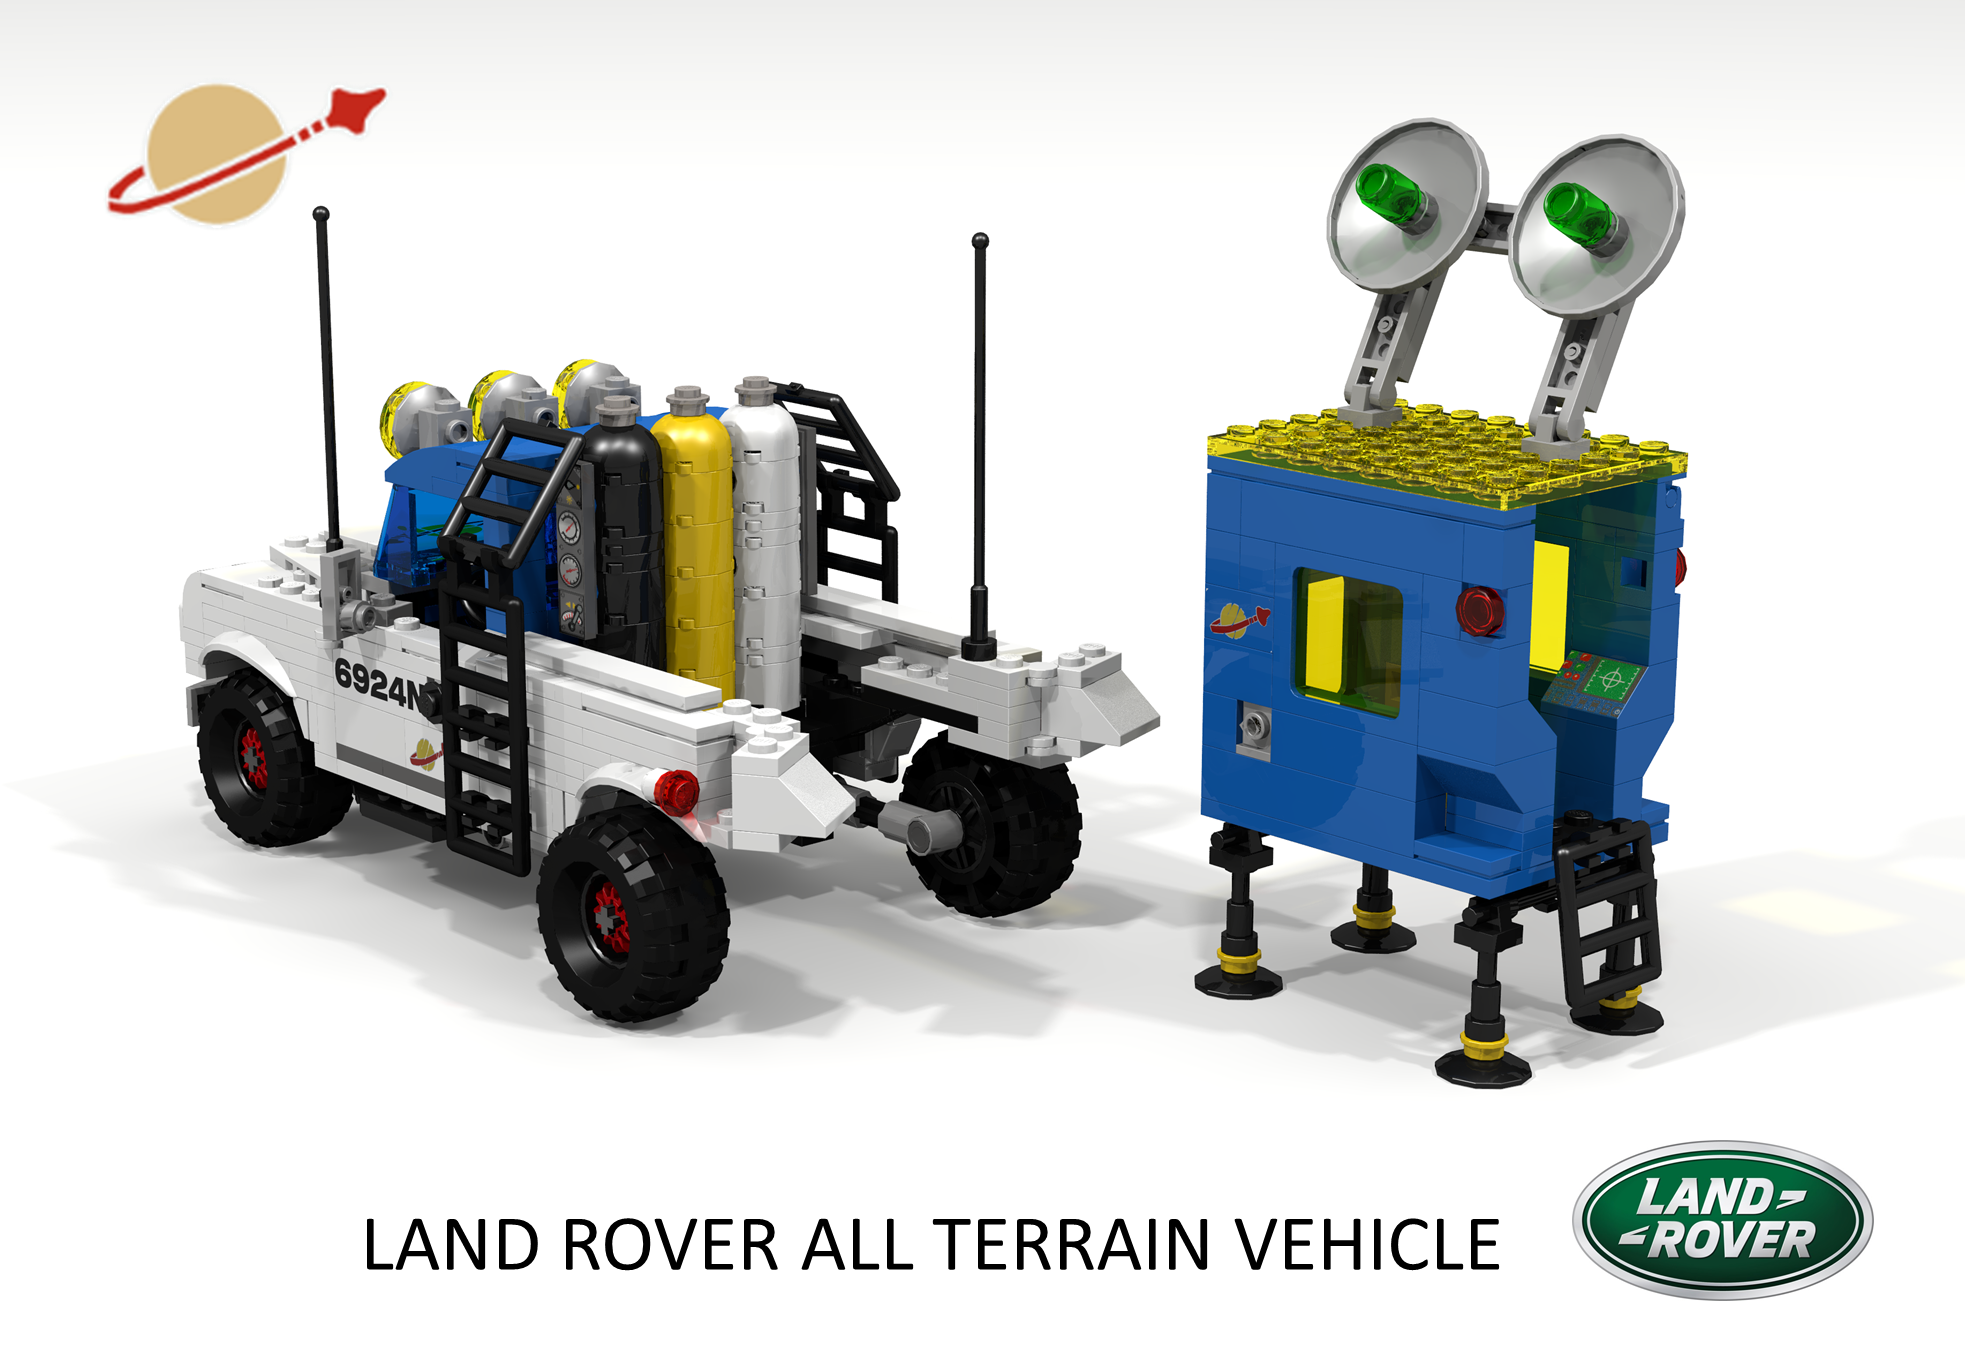 ll6924n_land_rover_all_terrain_vehicle_02.png